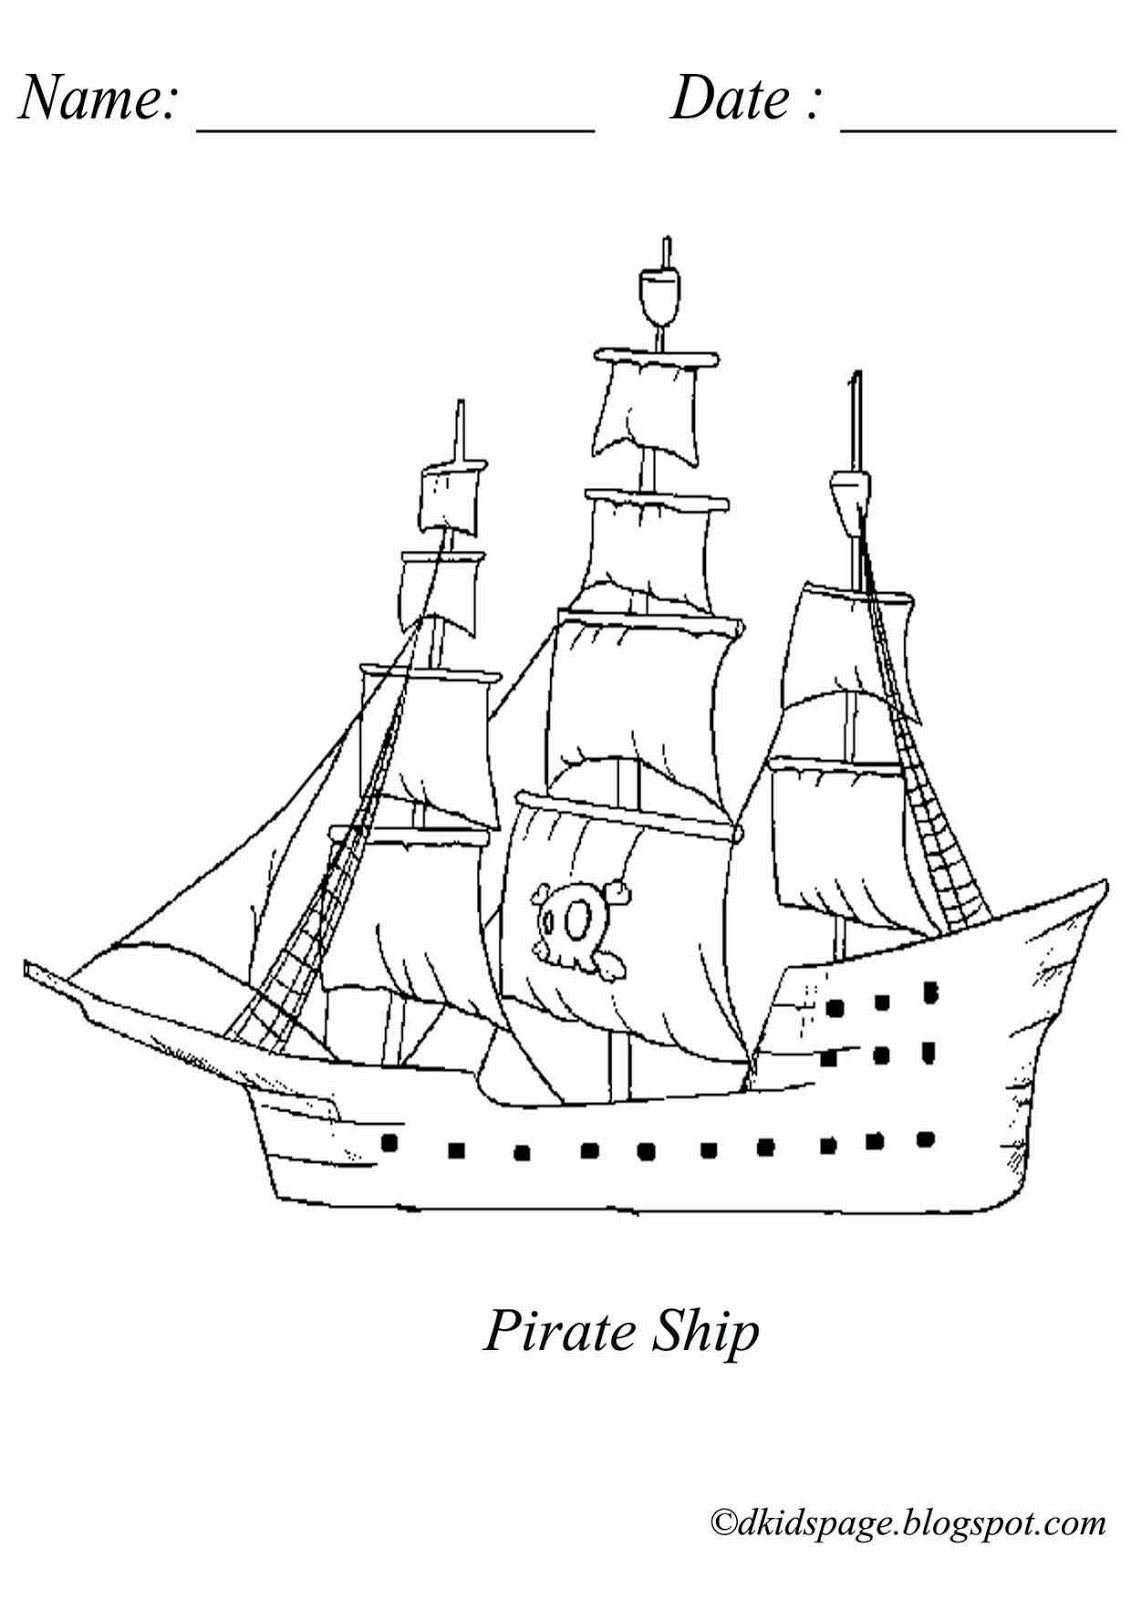 coloring ship for kids coloring picture of pirate ship download free printable ship kids for coloring